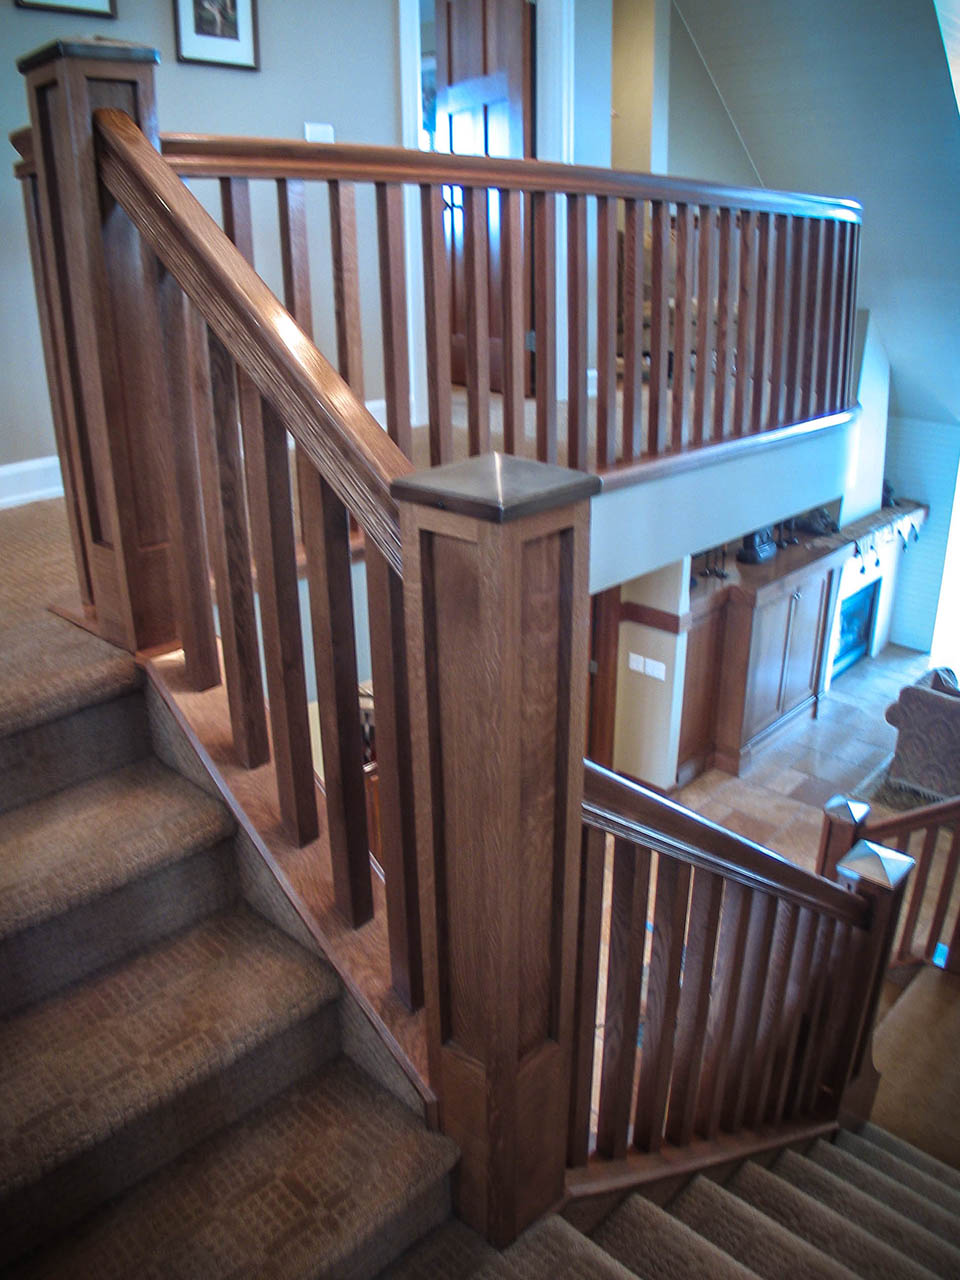 Tucson Architects Mission Style Staircase, Railings, Balusters | Artistic Stairs